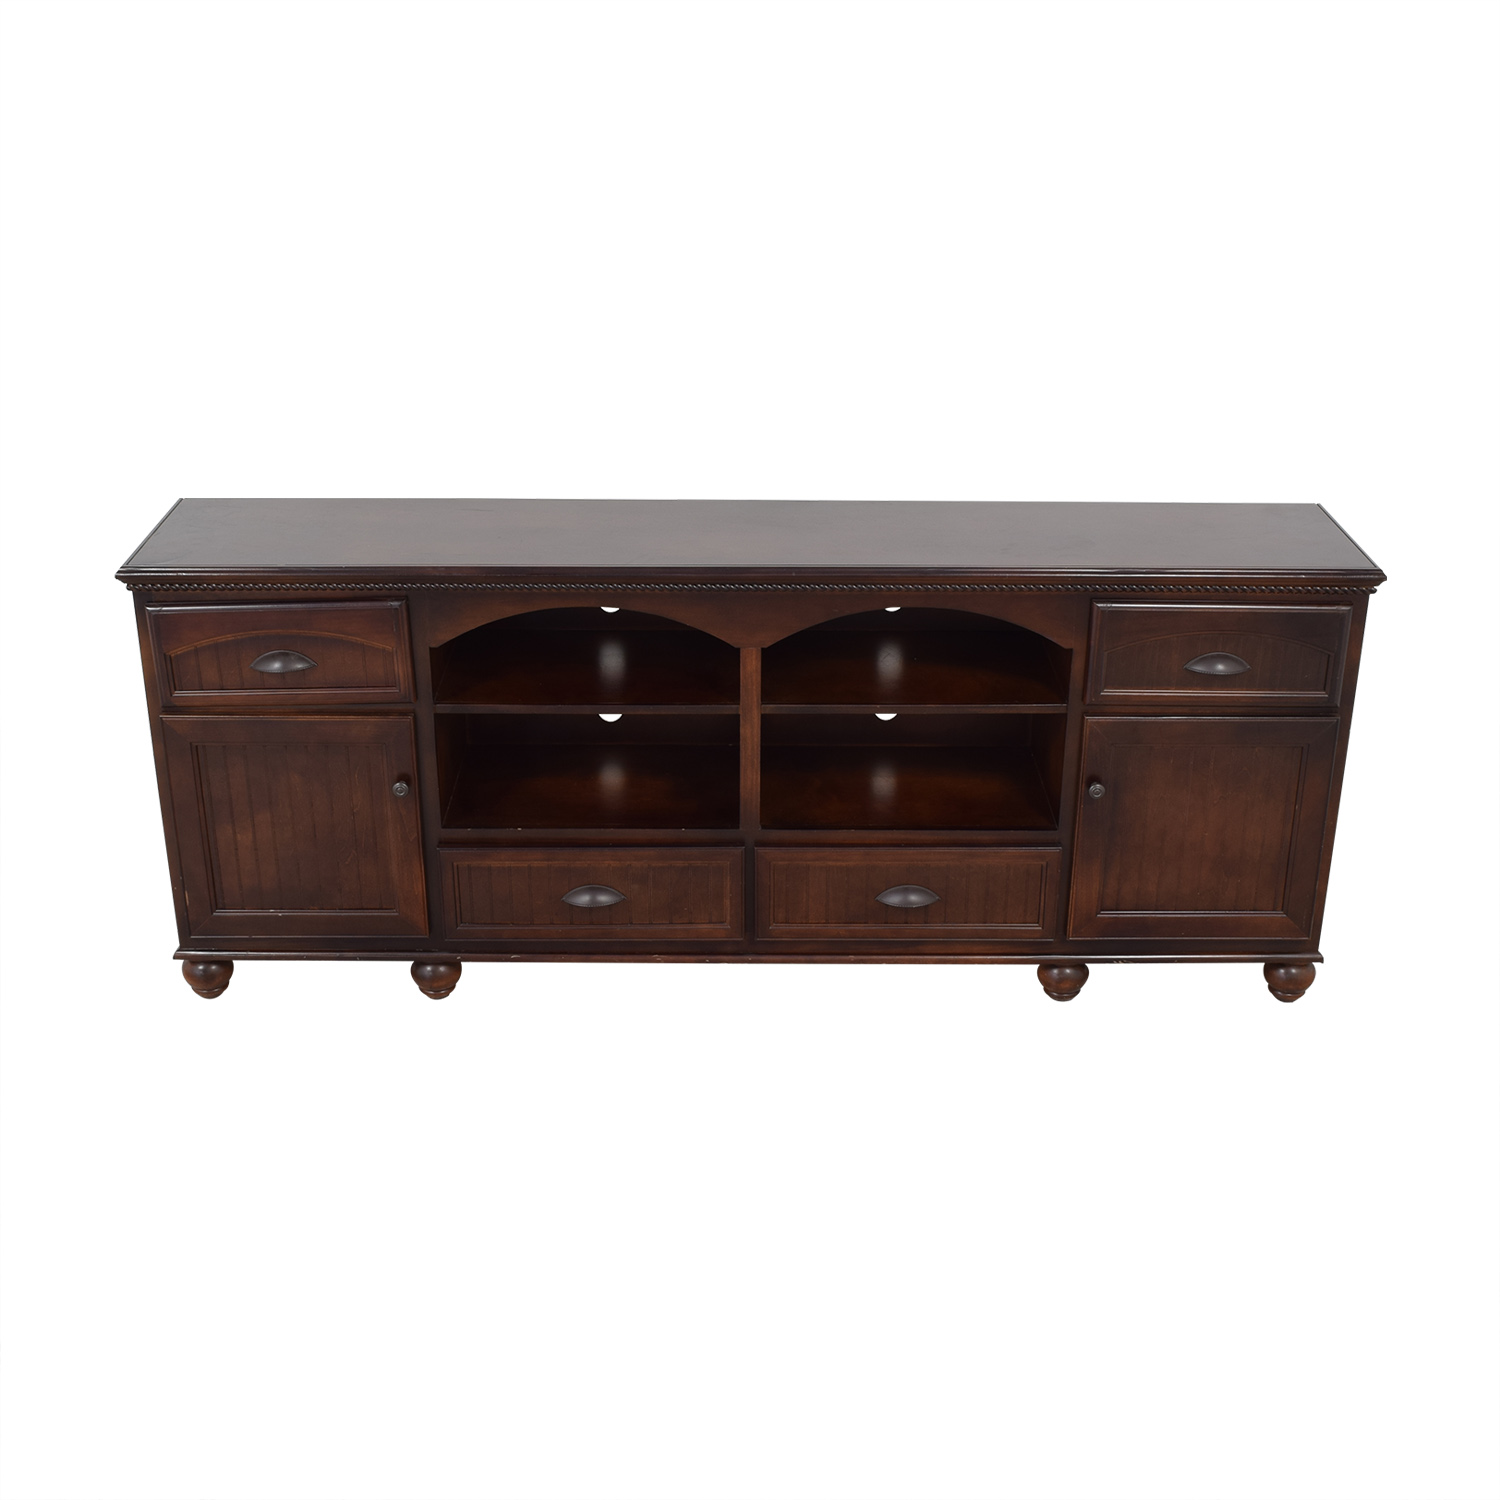 shop Overstock Overstock TV Stand with Cabinets and Drawers online